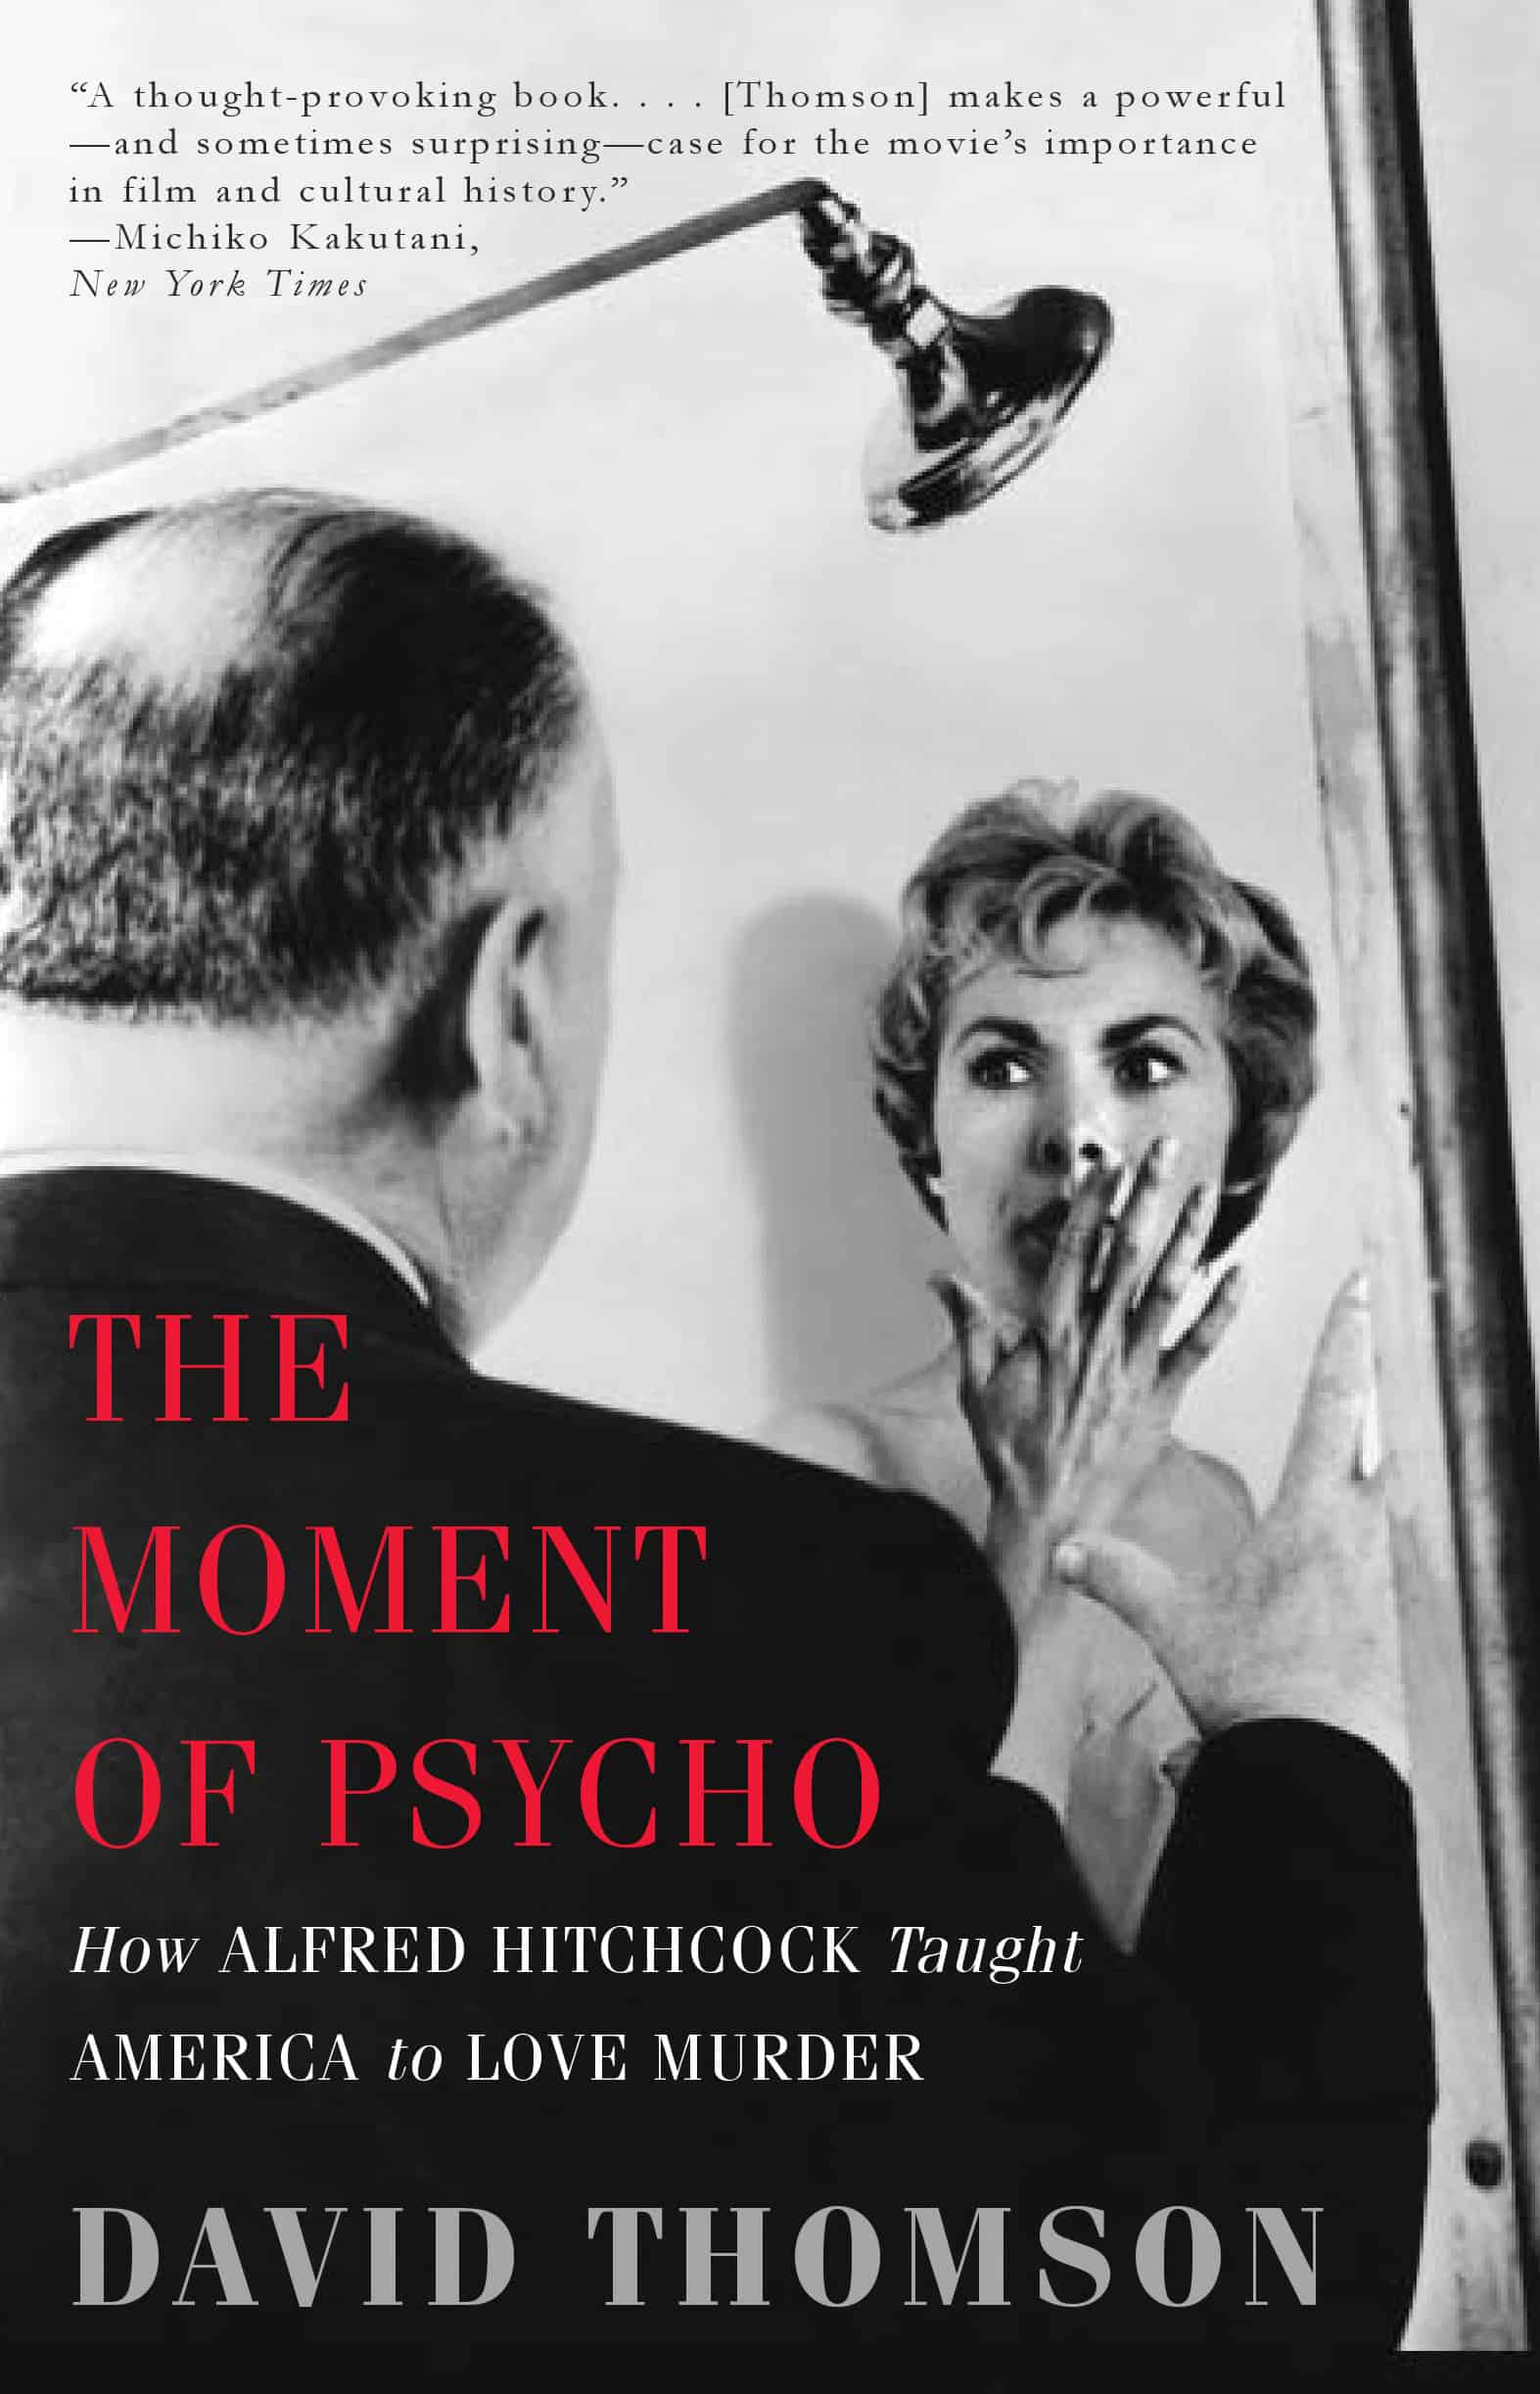 The Moment of Psycho How Alfred Hitchcock Taught America to Love Murder - The Moment of Psycho: How Alfred Hitchcock Taught America to Love Murder